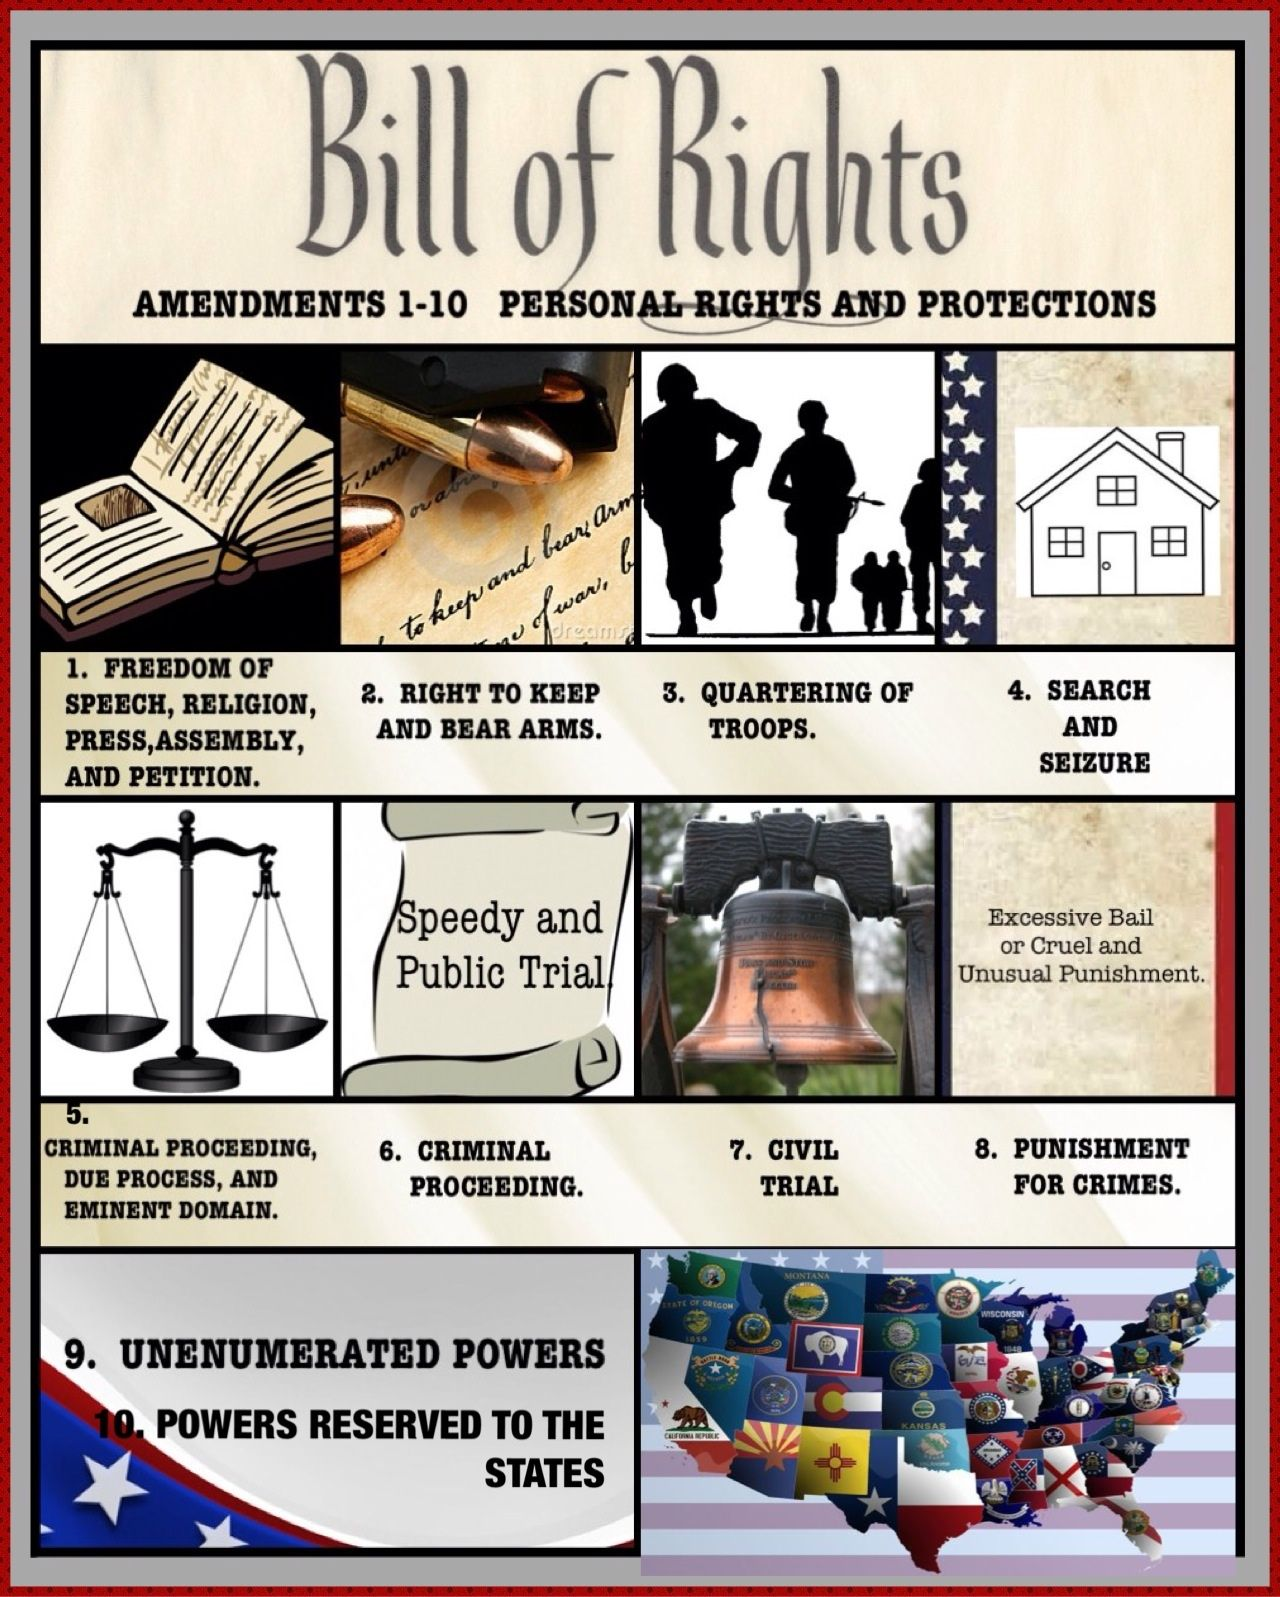 4). THE BILL OF RIGHTS [ 1597 x 1280 Pixel ]